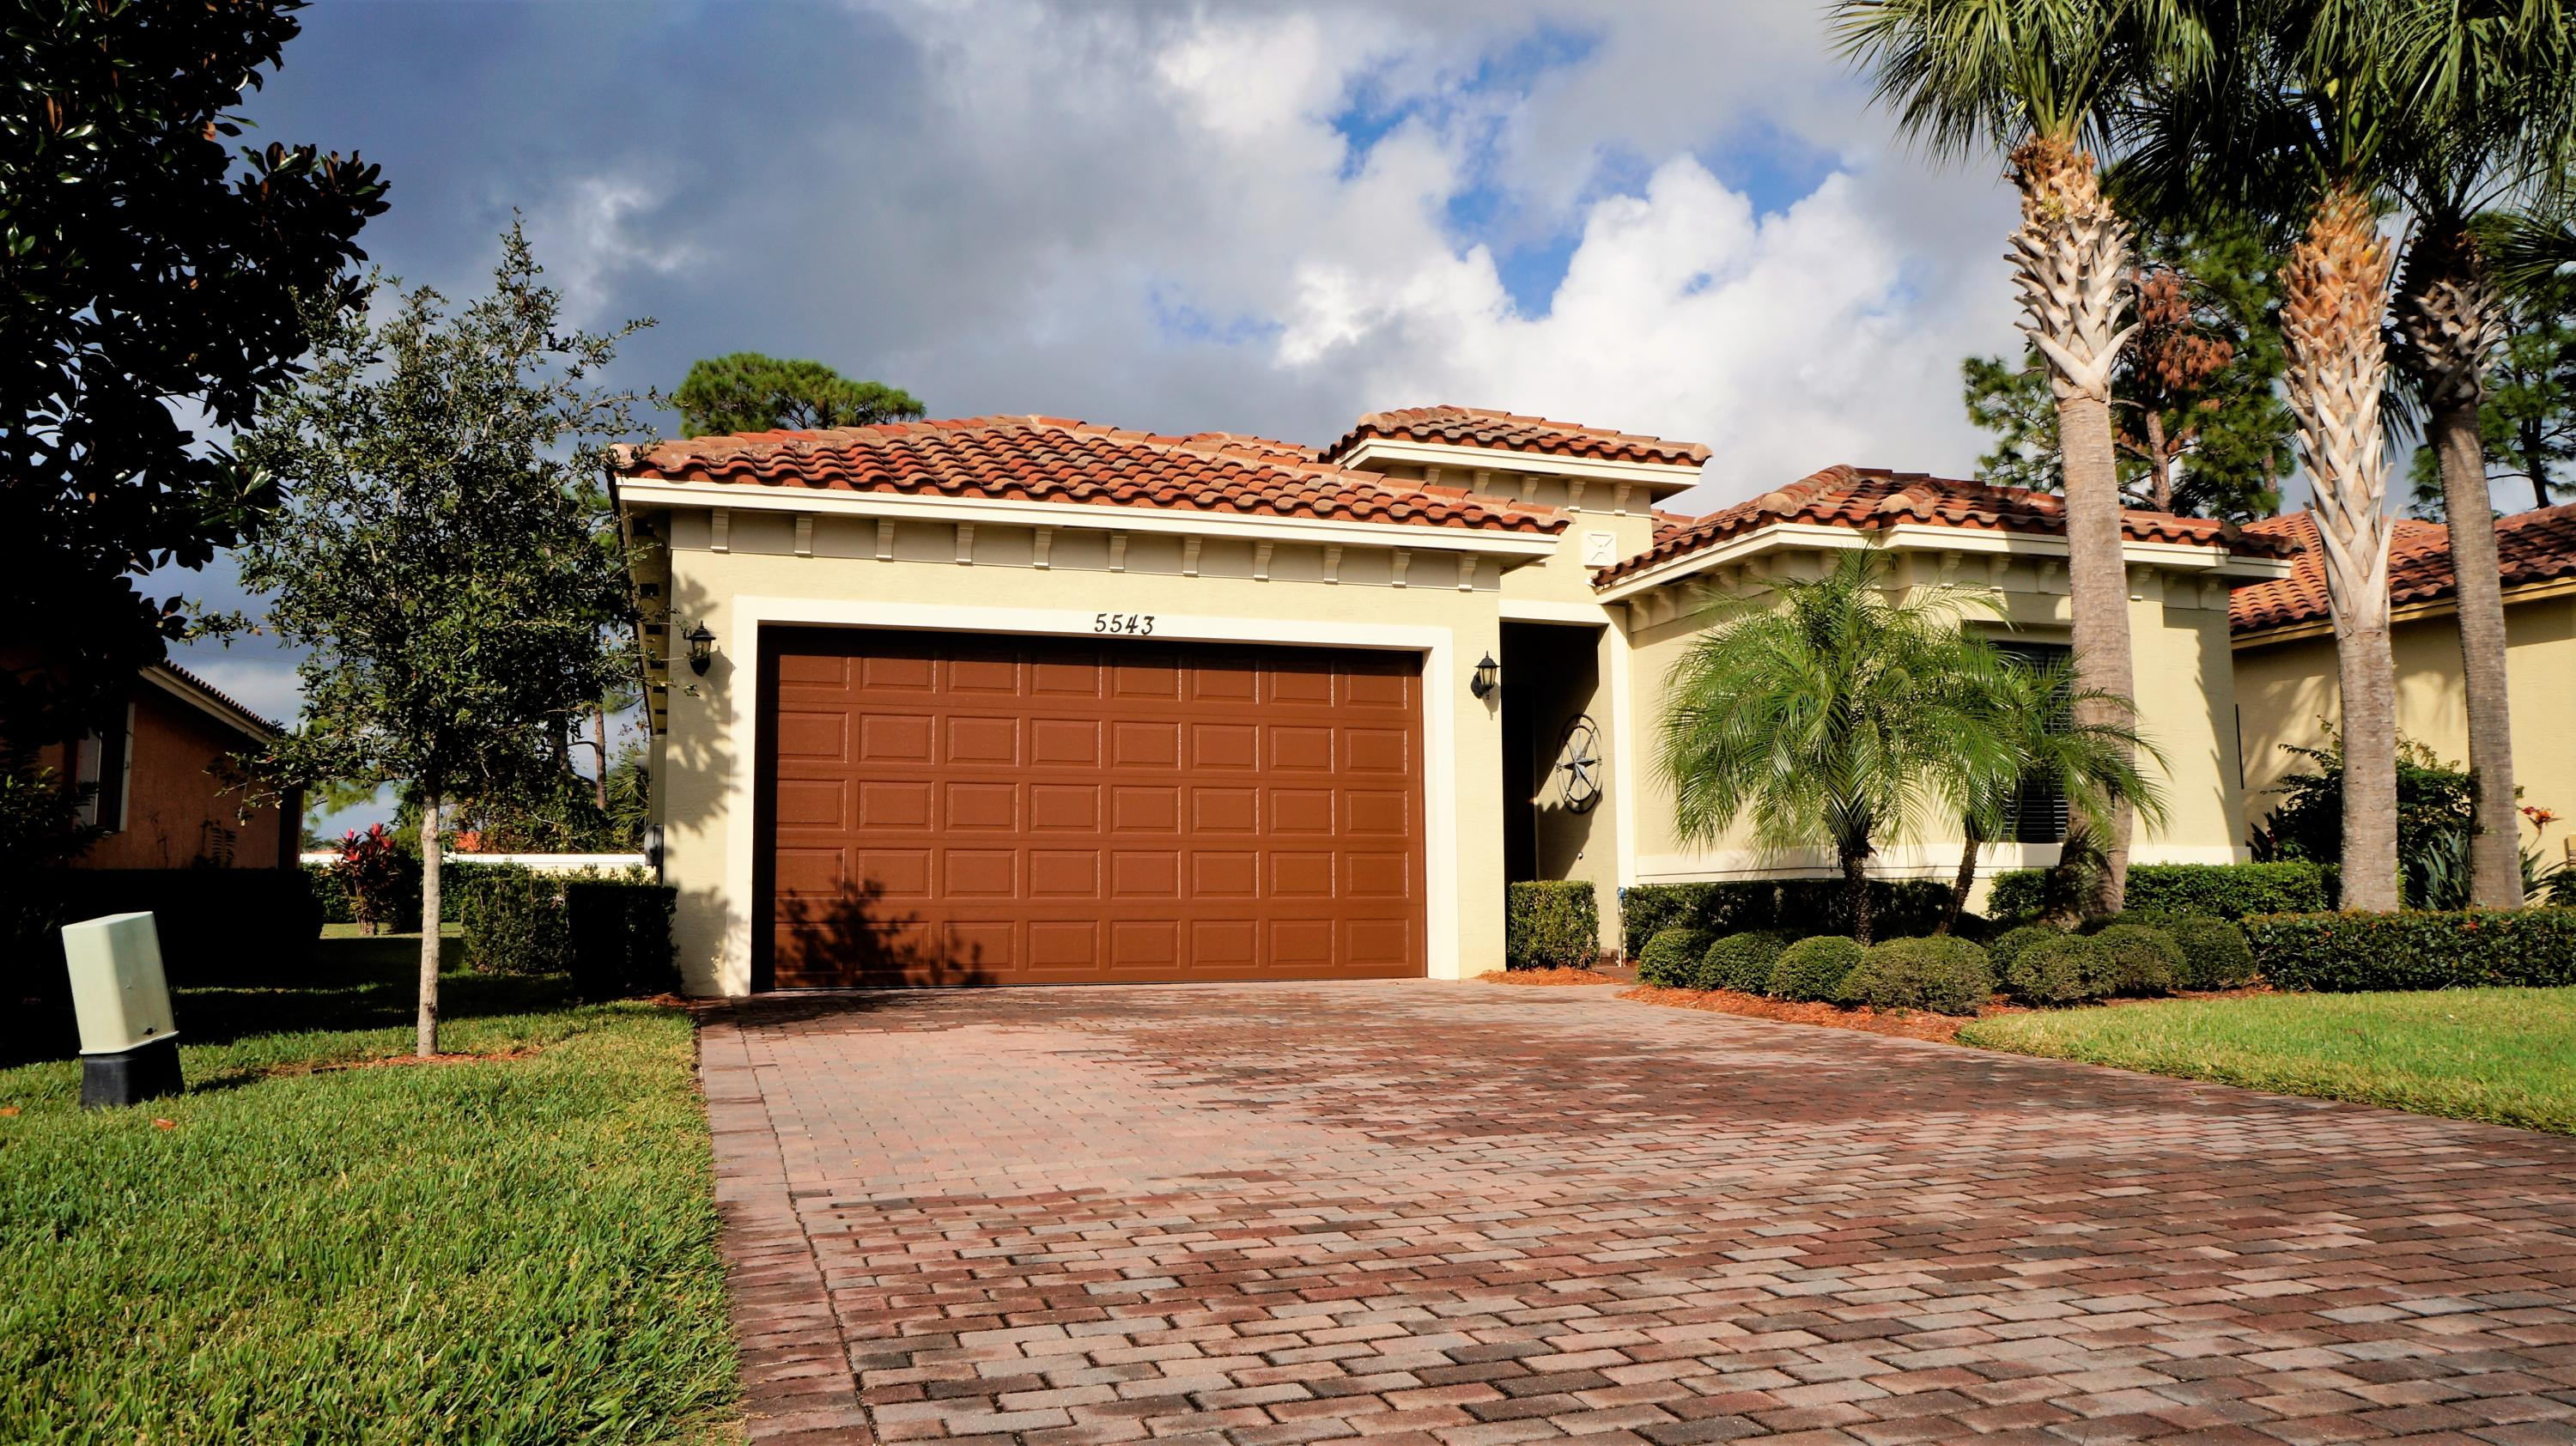 5543 57th Vero Beach 32967